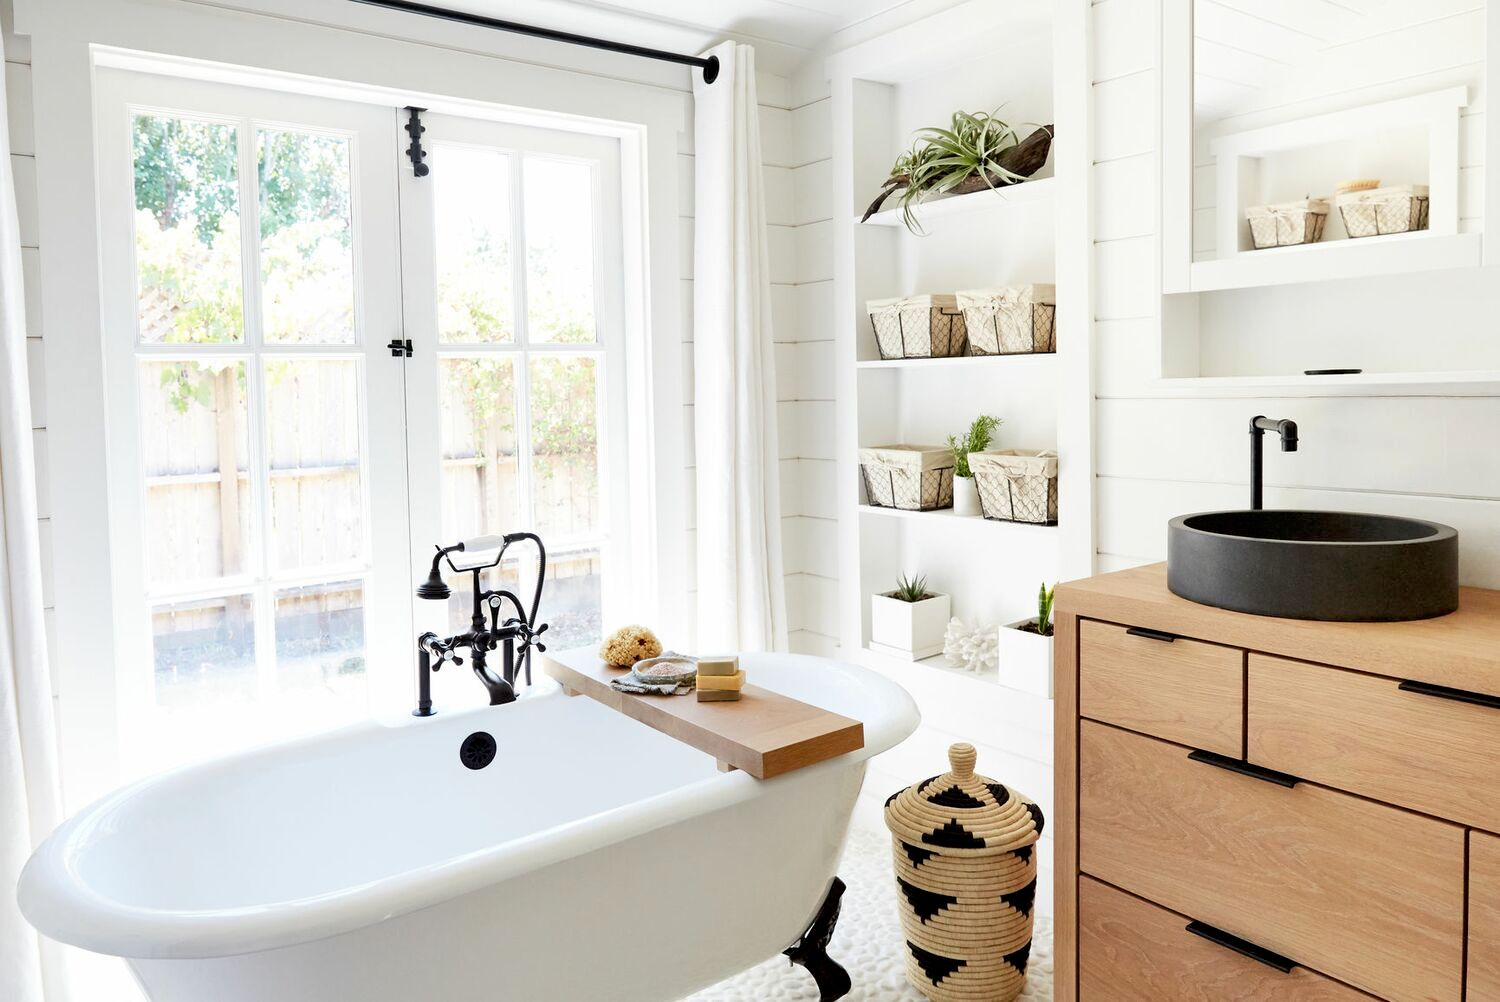 freestanding bath and sink